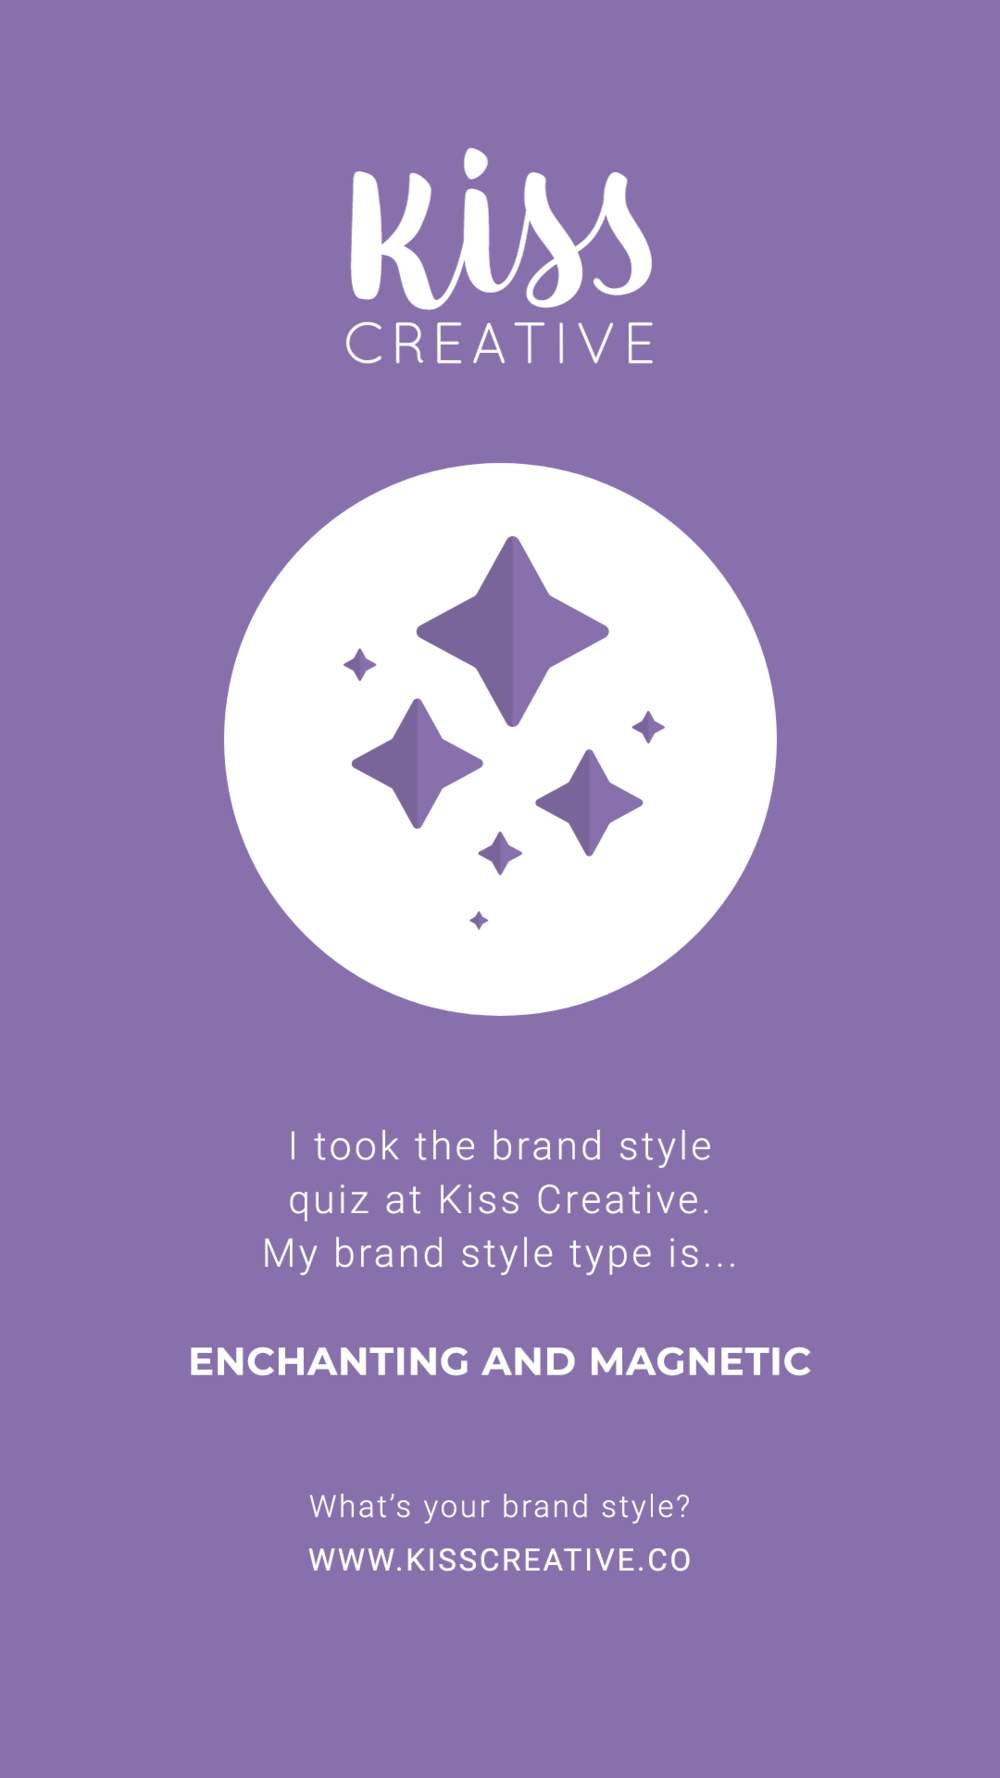 I took the Kiss Creative brand style quiz and I got Enchanting and Magnetic!